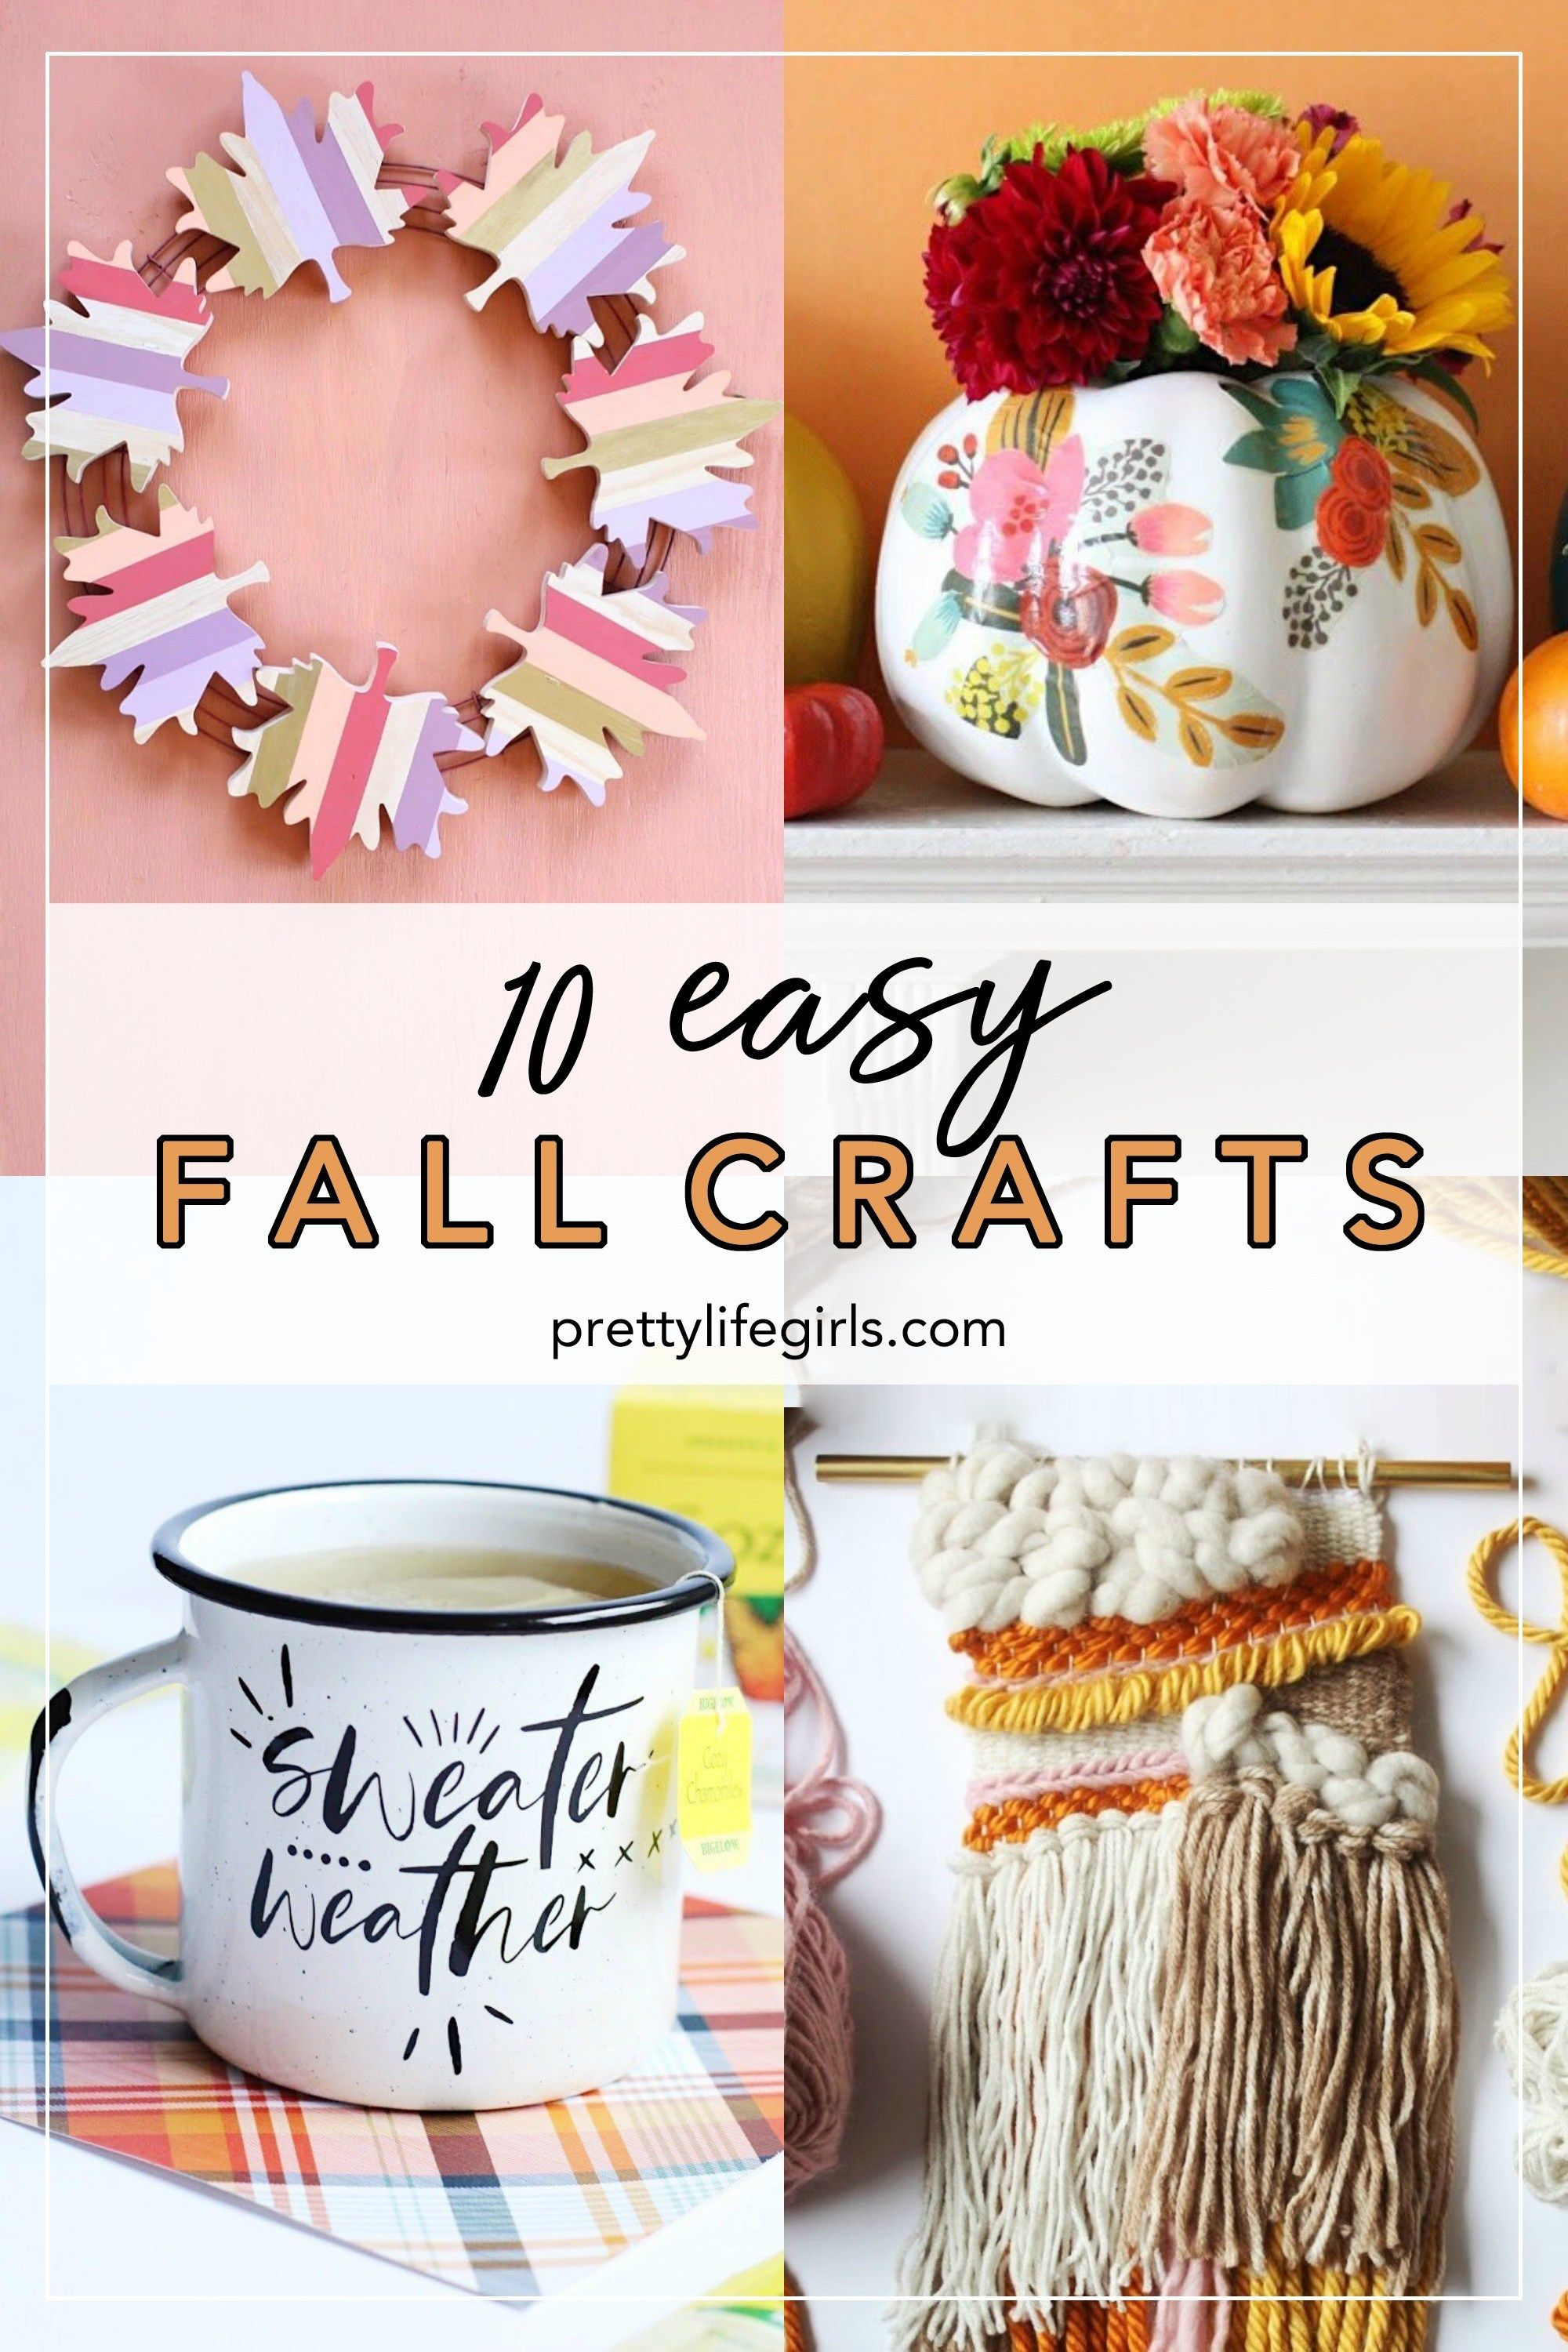 Top 10 Easy Fall Crafts The Pretty Life Girls Diy